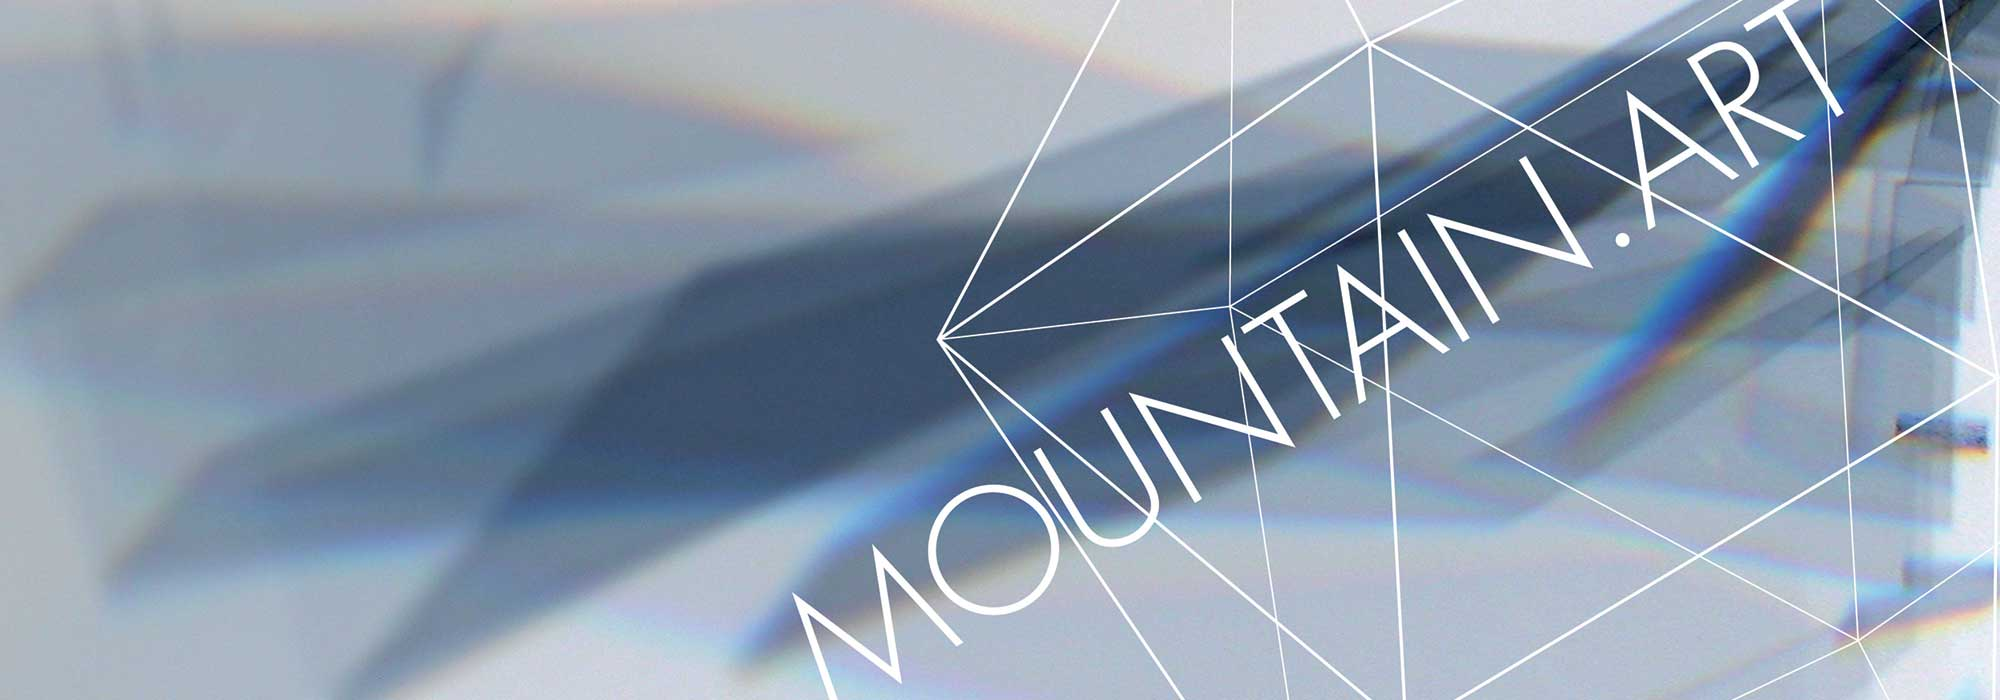 Wolfgang Eder Consulting MOUNTAIN.ART